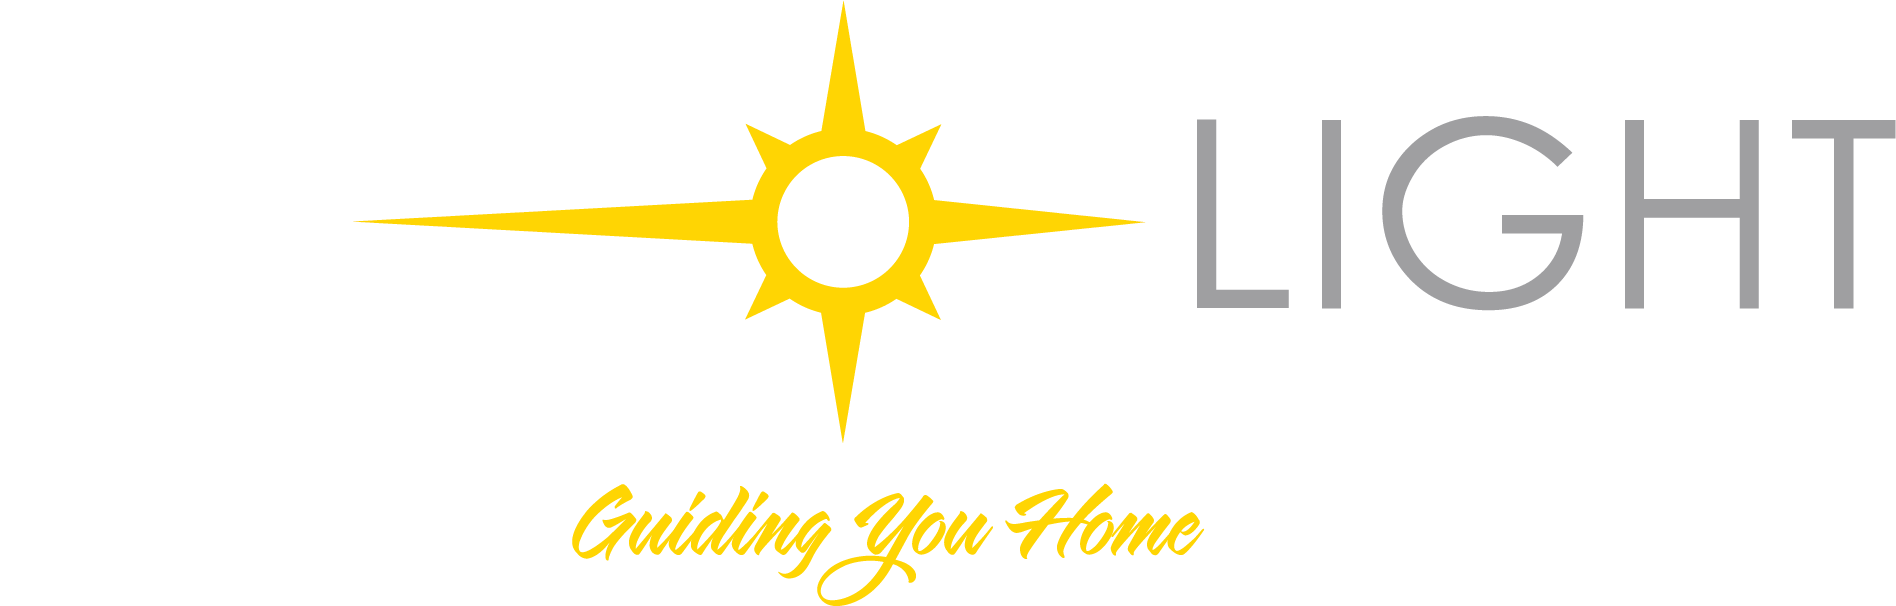 BeaconLight Home Inspection